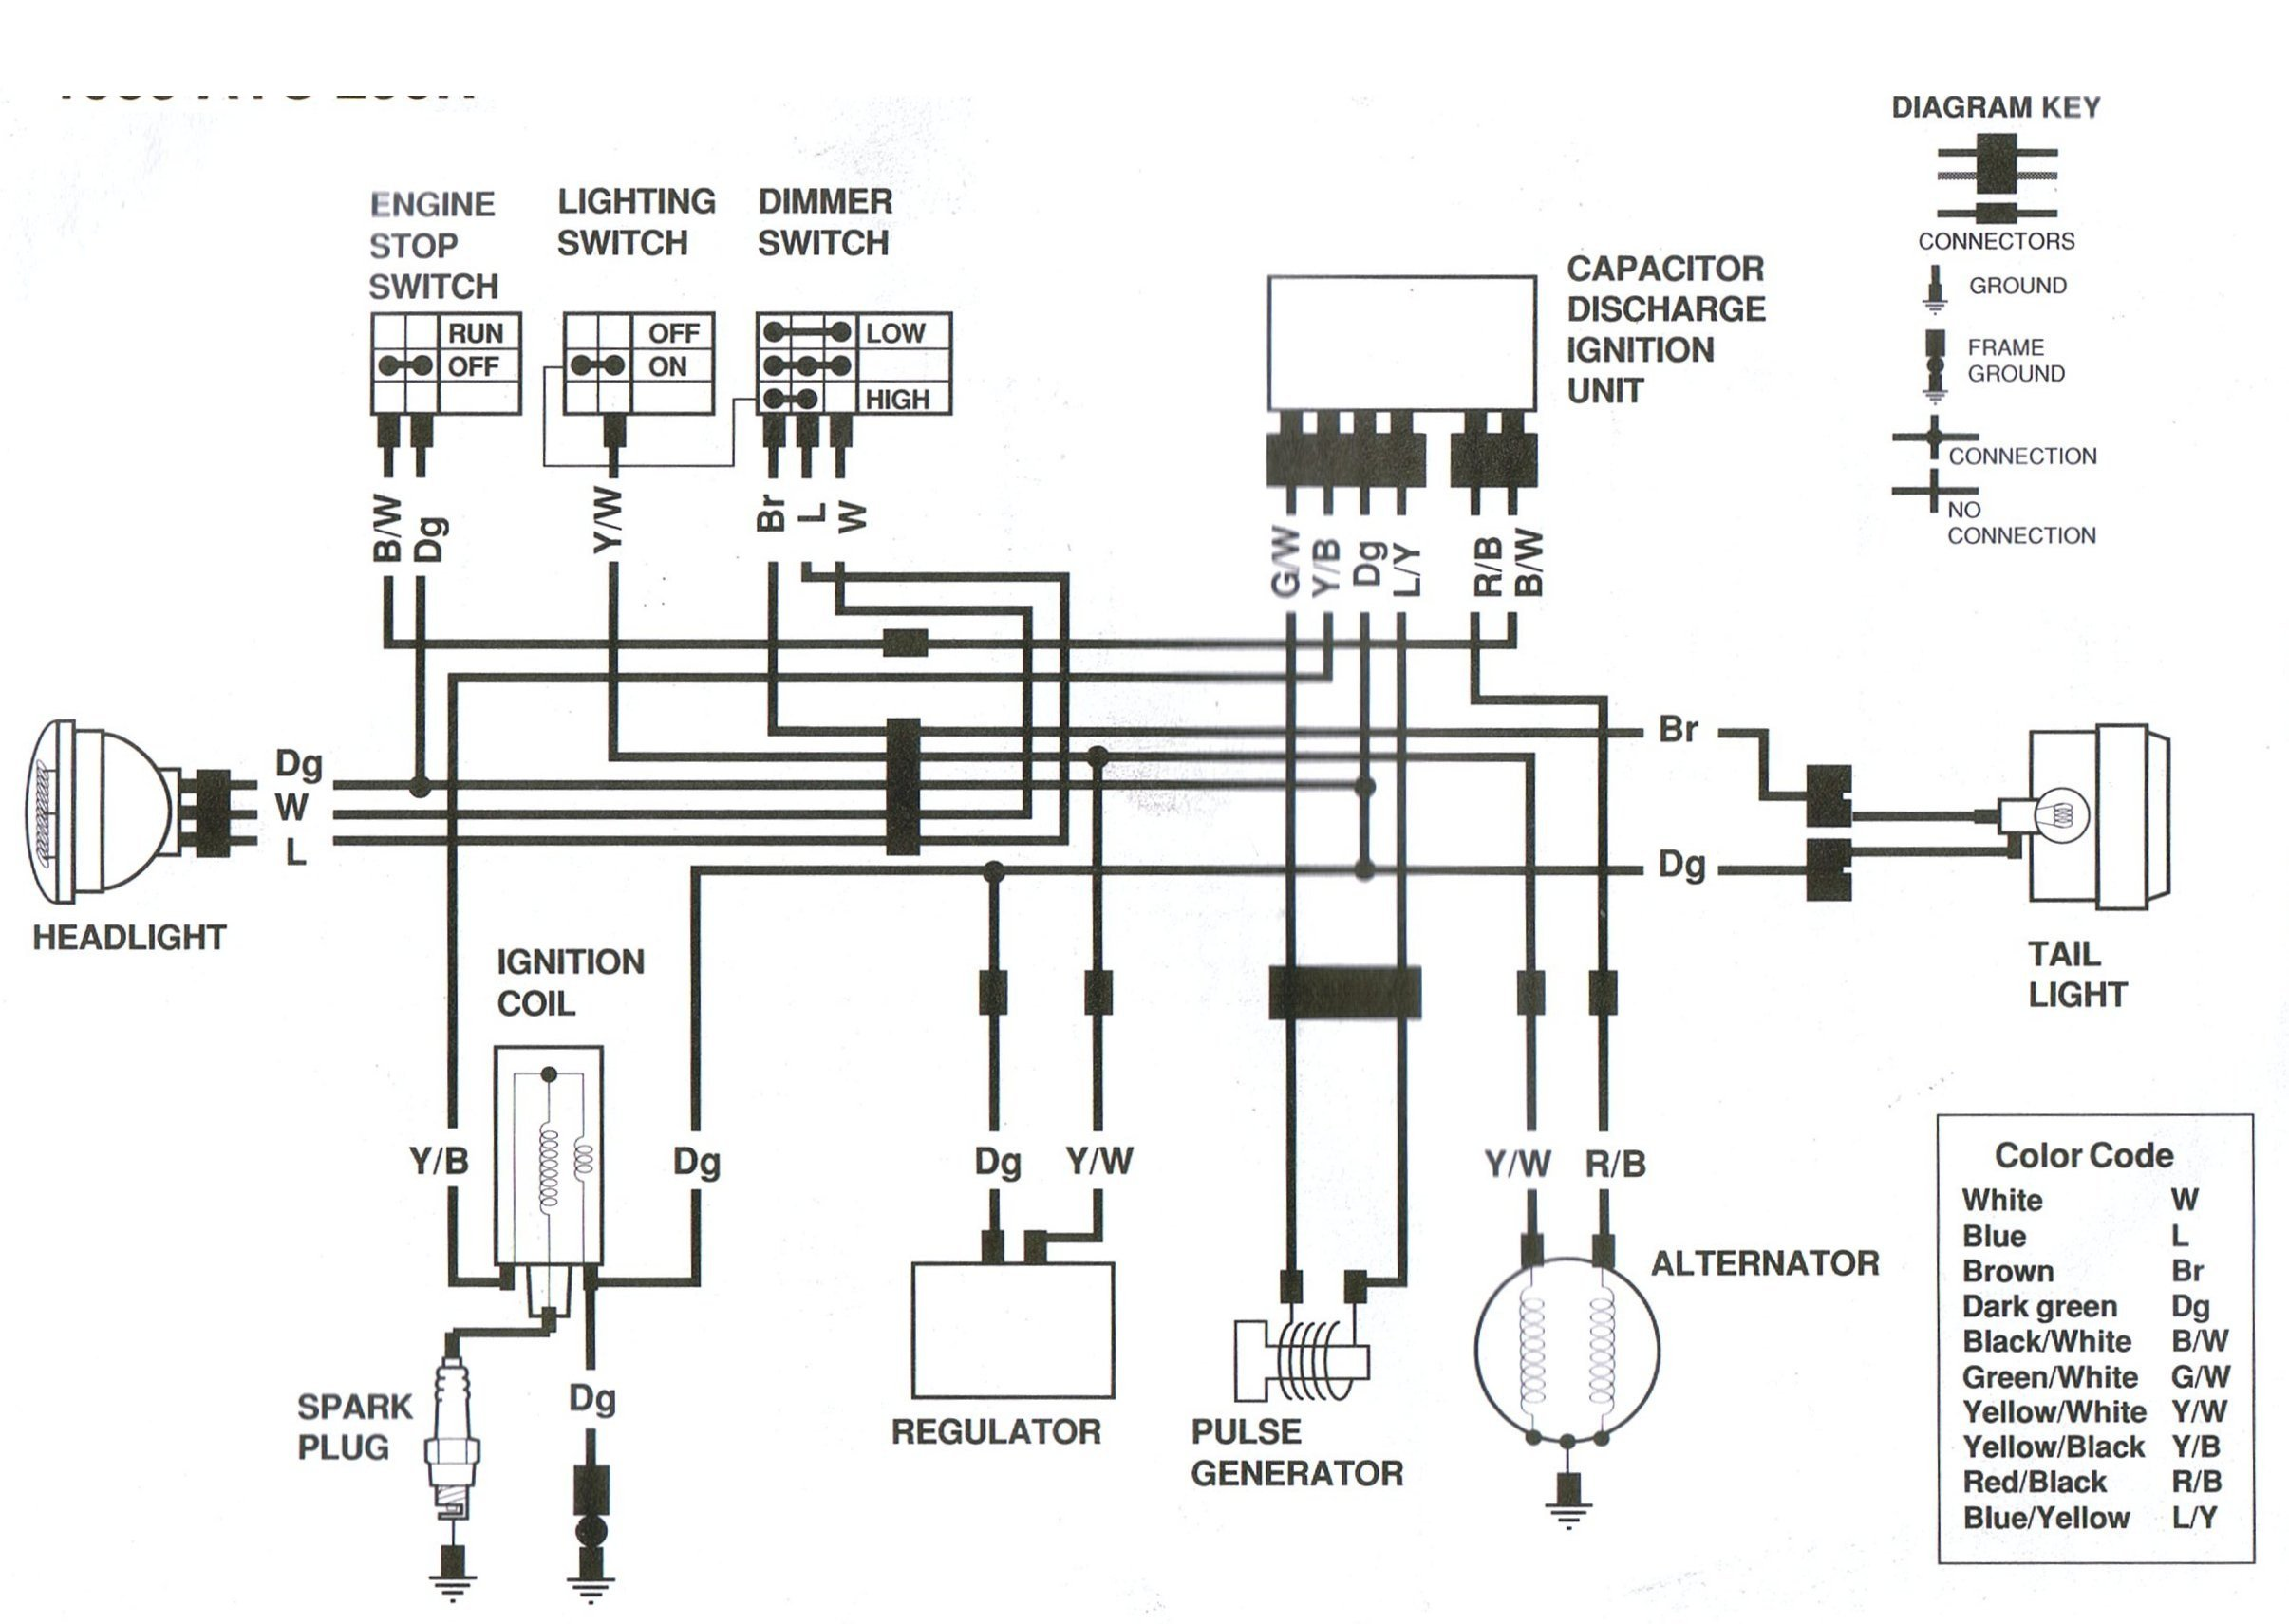 1999 bass tracker wiring diagram